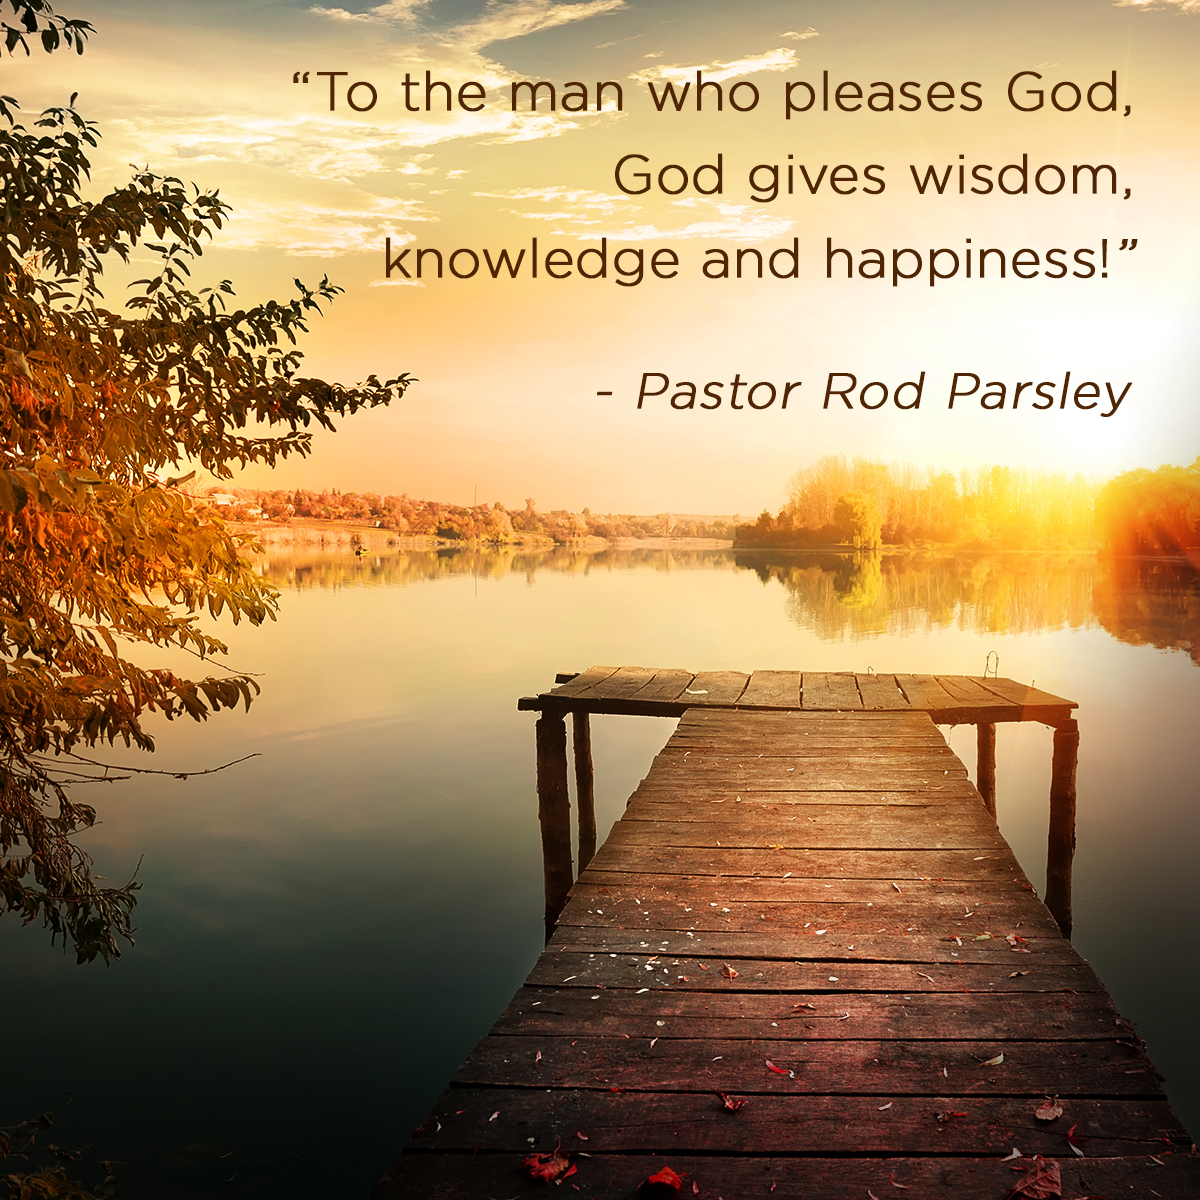 """To the man who pleases God, God gives wisdom, knowledge and happiness!"" – Pastor Rod Parsley"